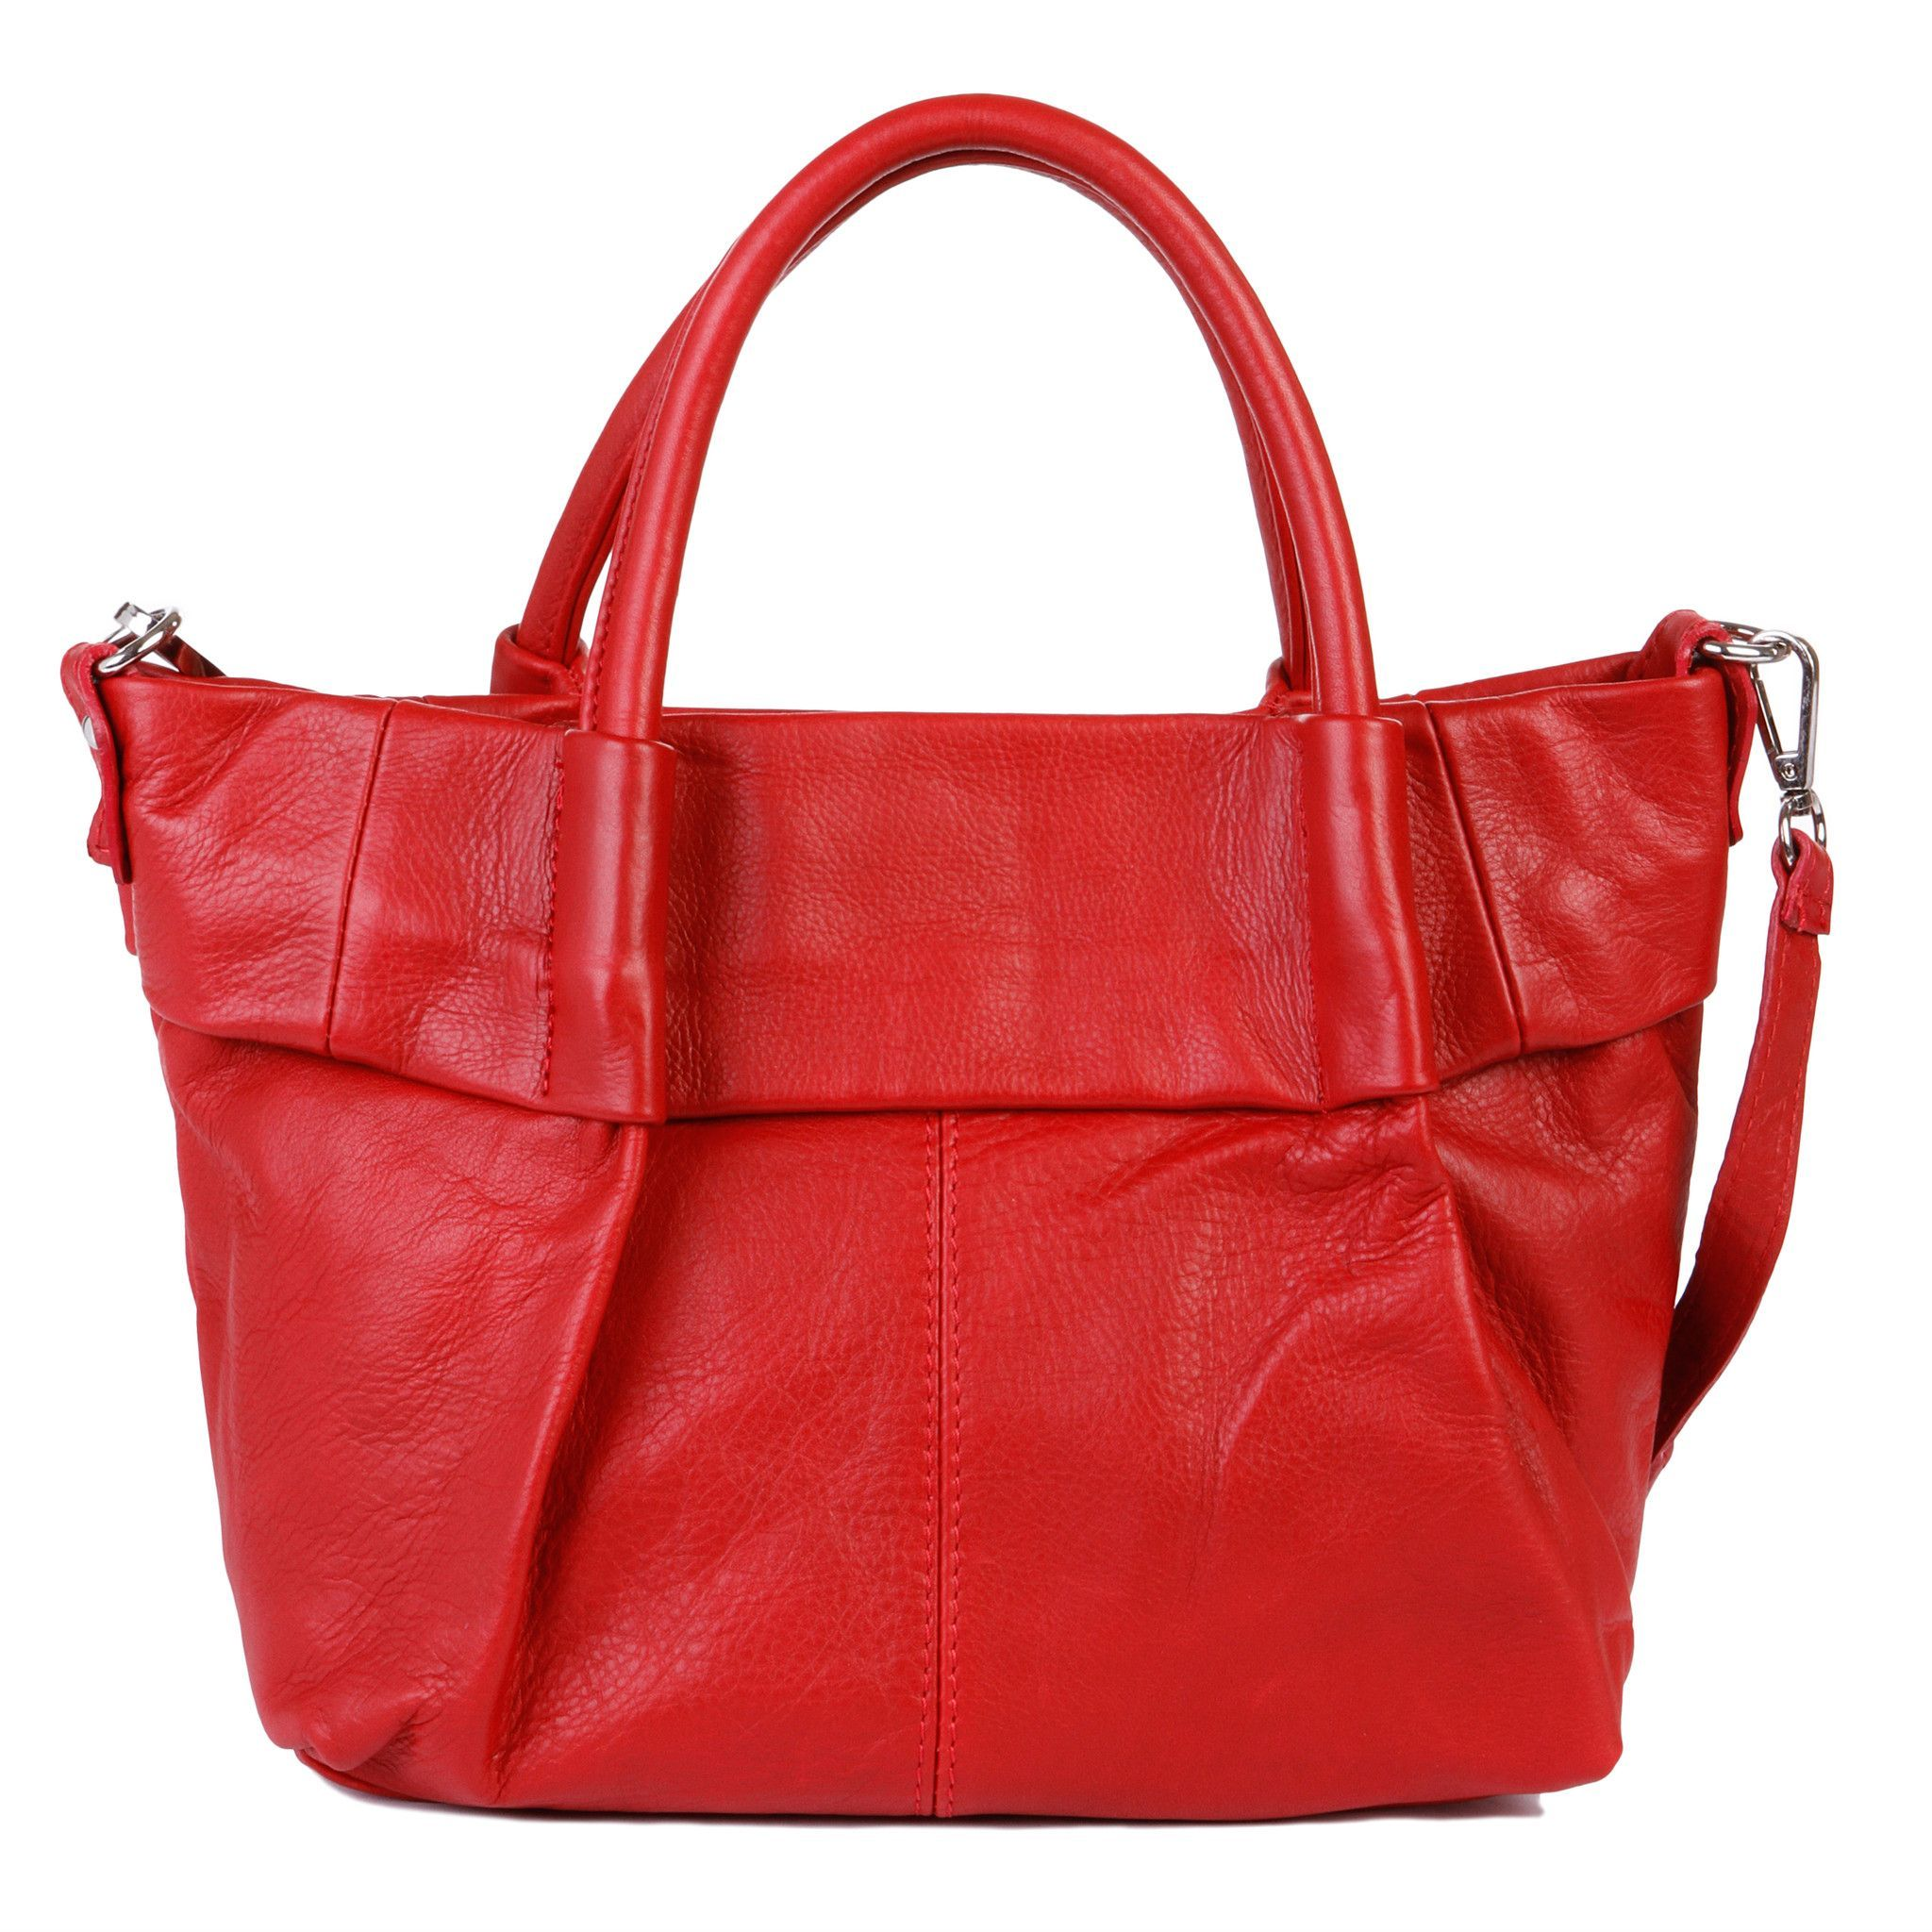 LaGaksta Susie Genuine Soft Leather Medium Tote Shoulder Bag …